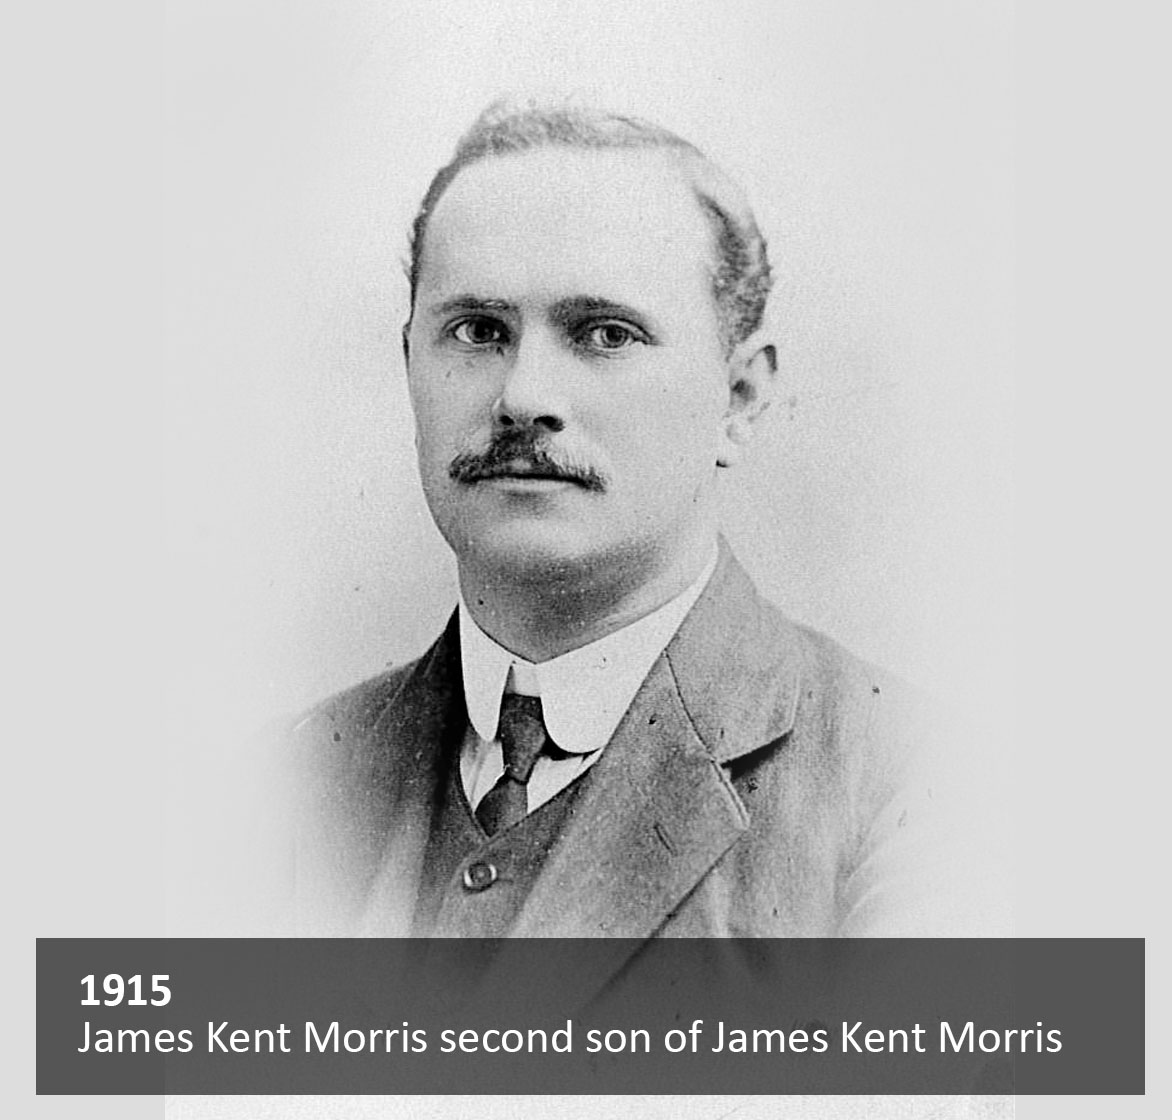 James Kent Morris, second son of James Kent Morris